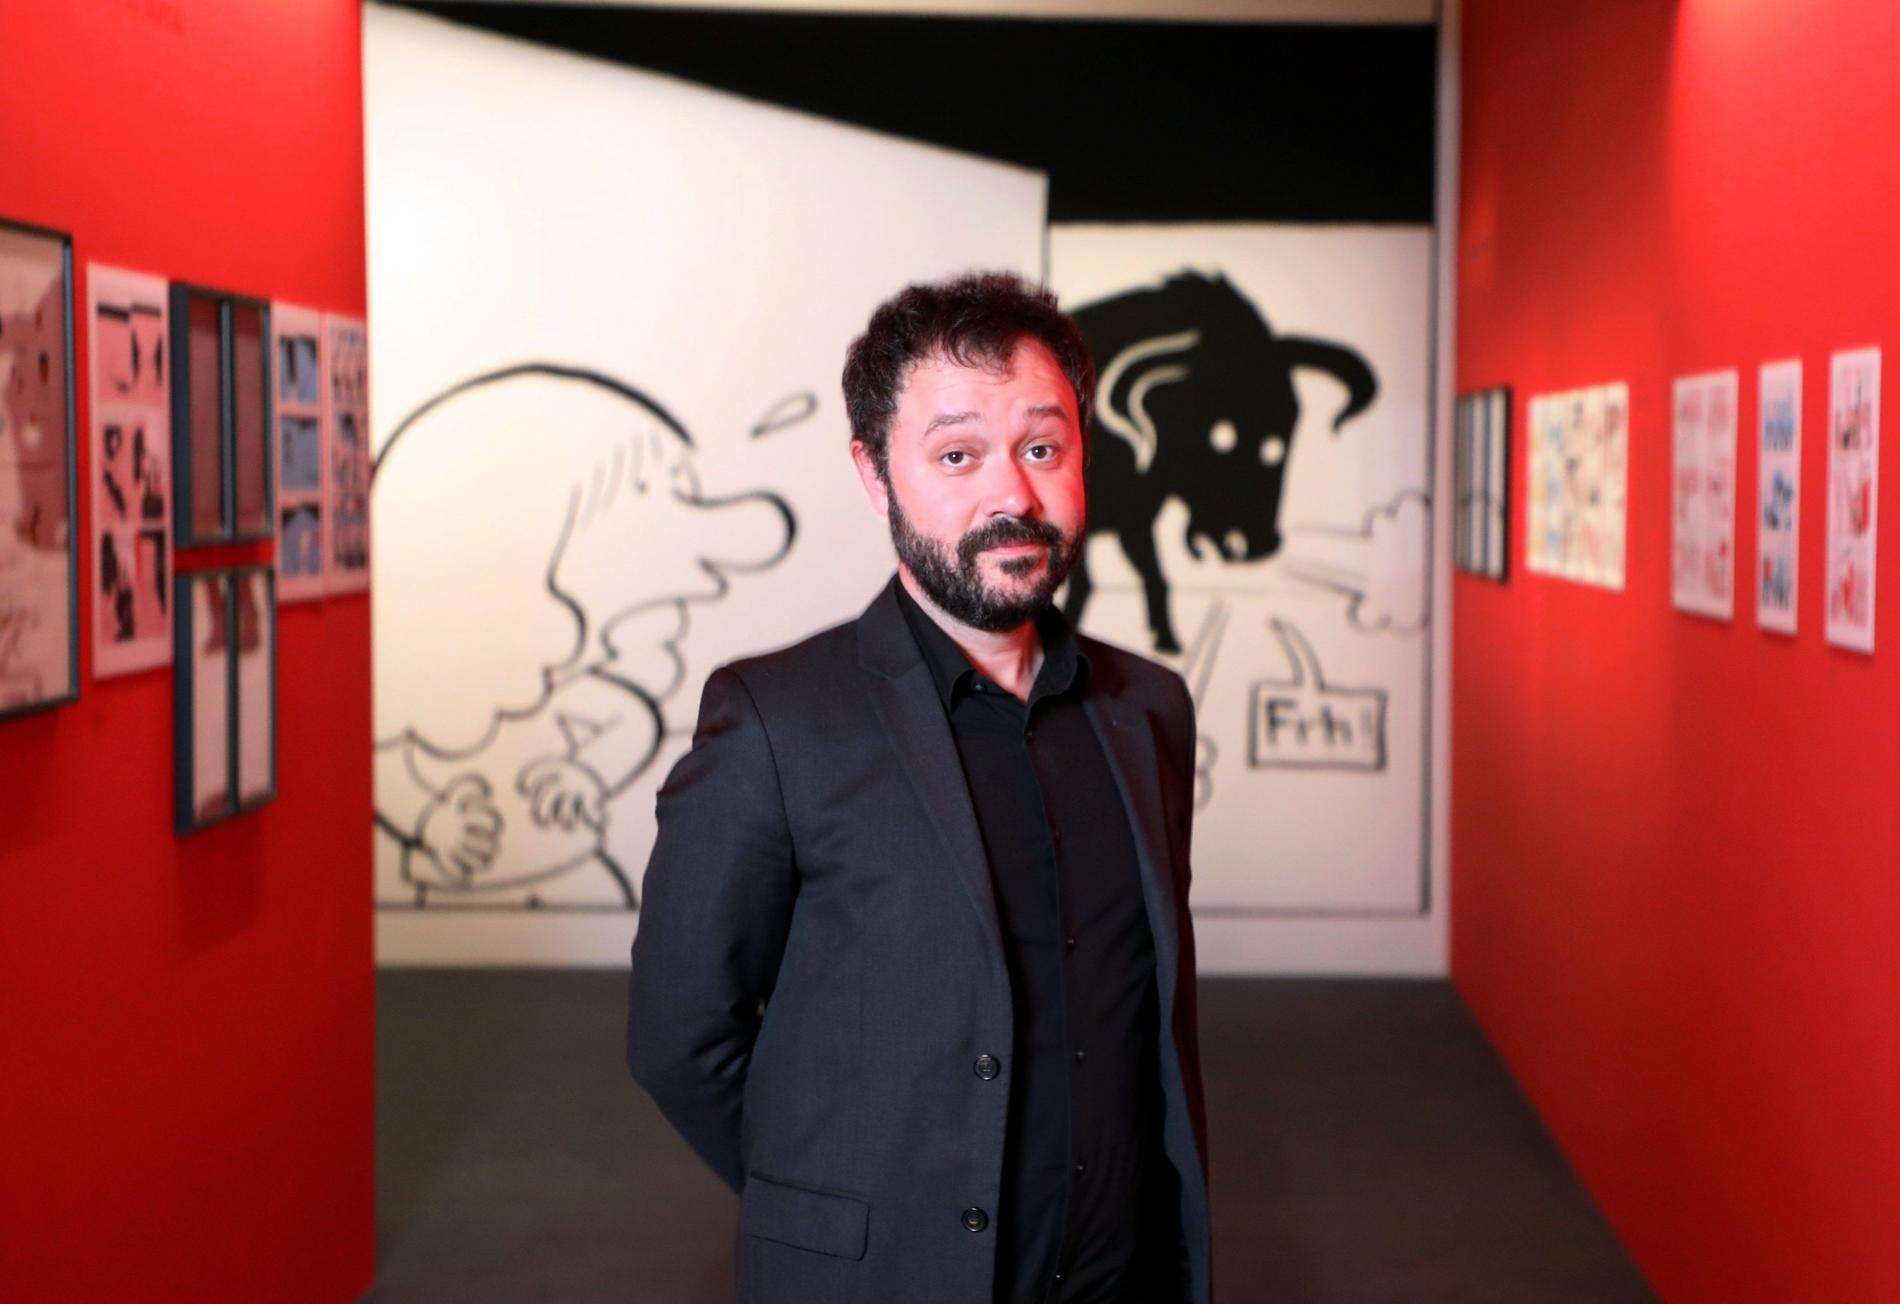 riad-sattouf-pompidou-exposition-news-art-mecenavie